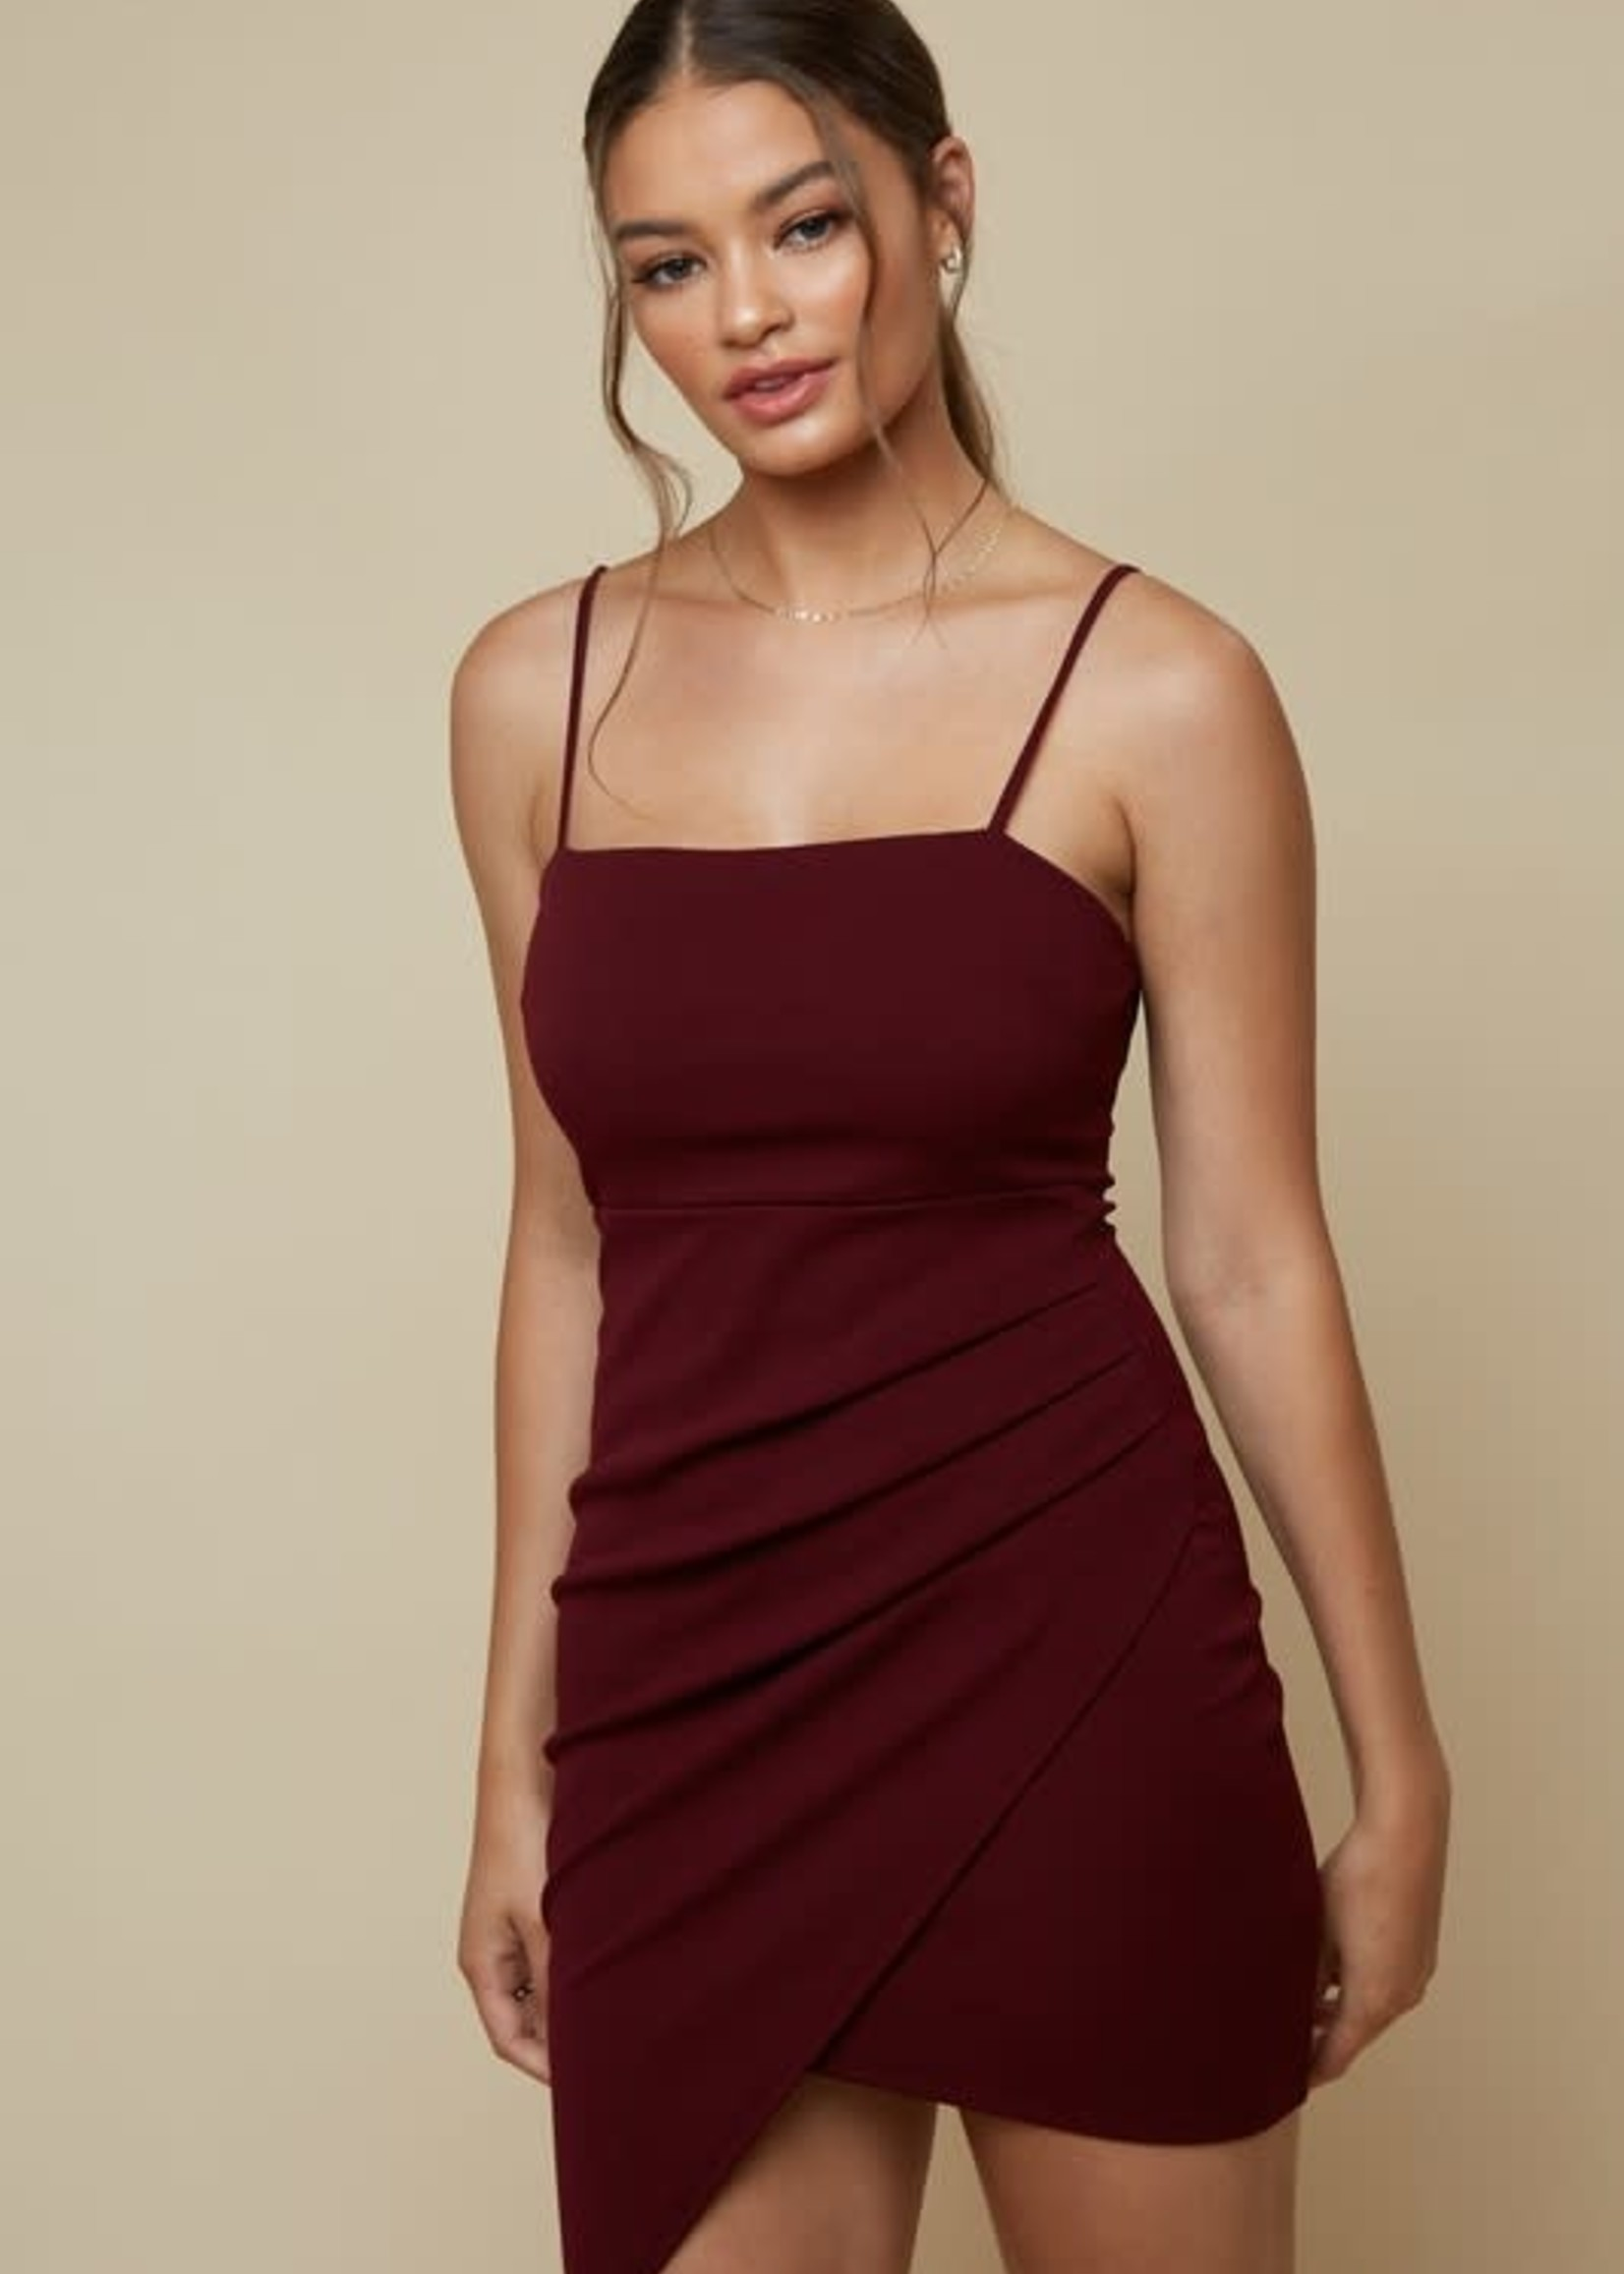 The Best Is Yet To Come Dress (2 Colors)